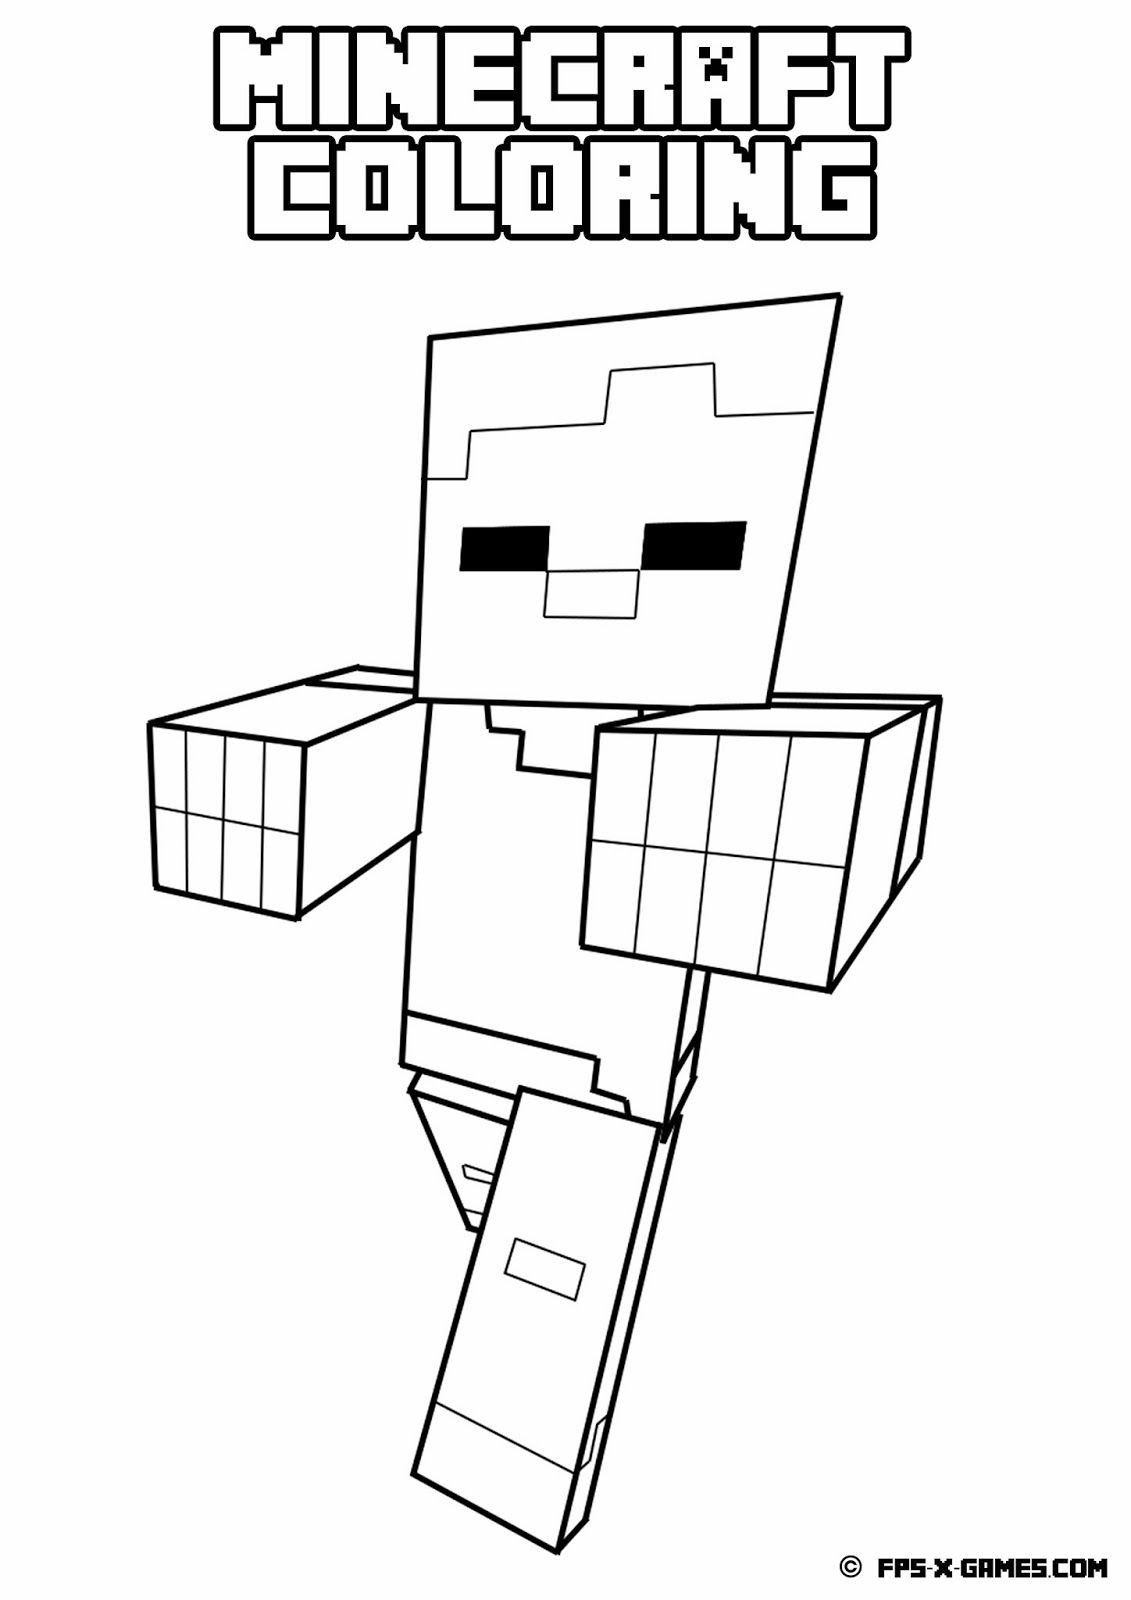 Minecraft Villager Coloring Page - #Coloring #Minecraft